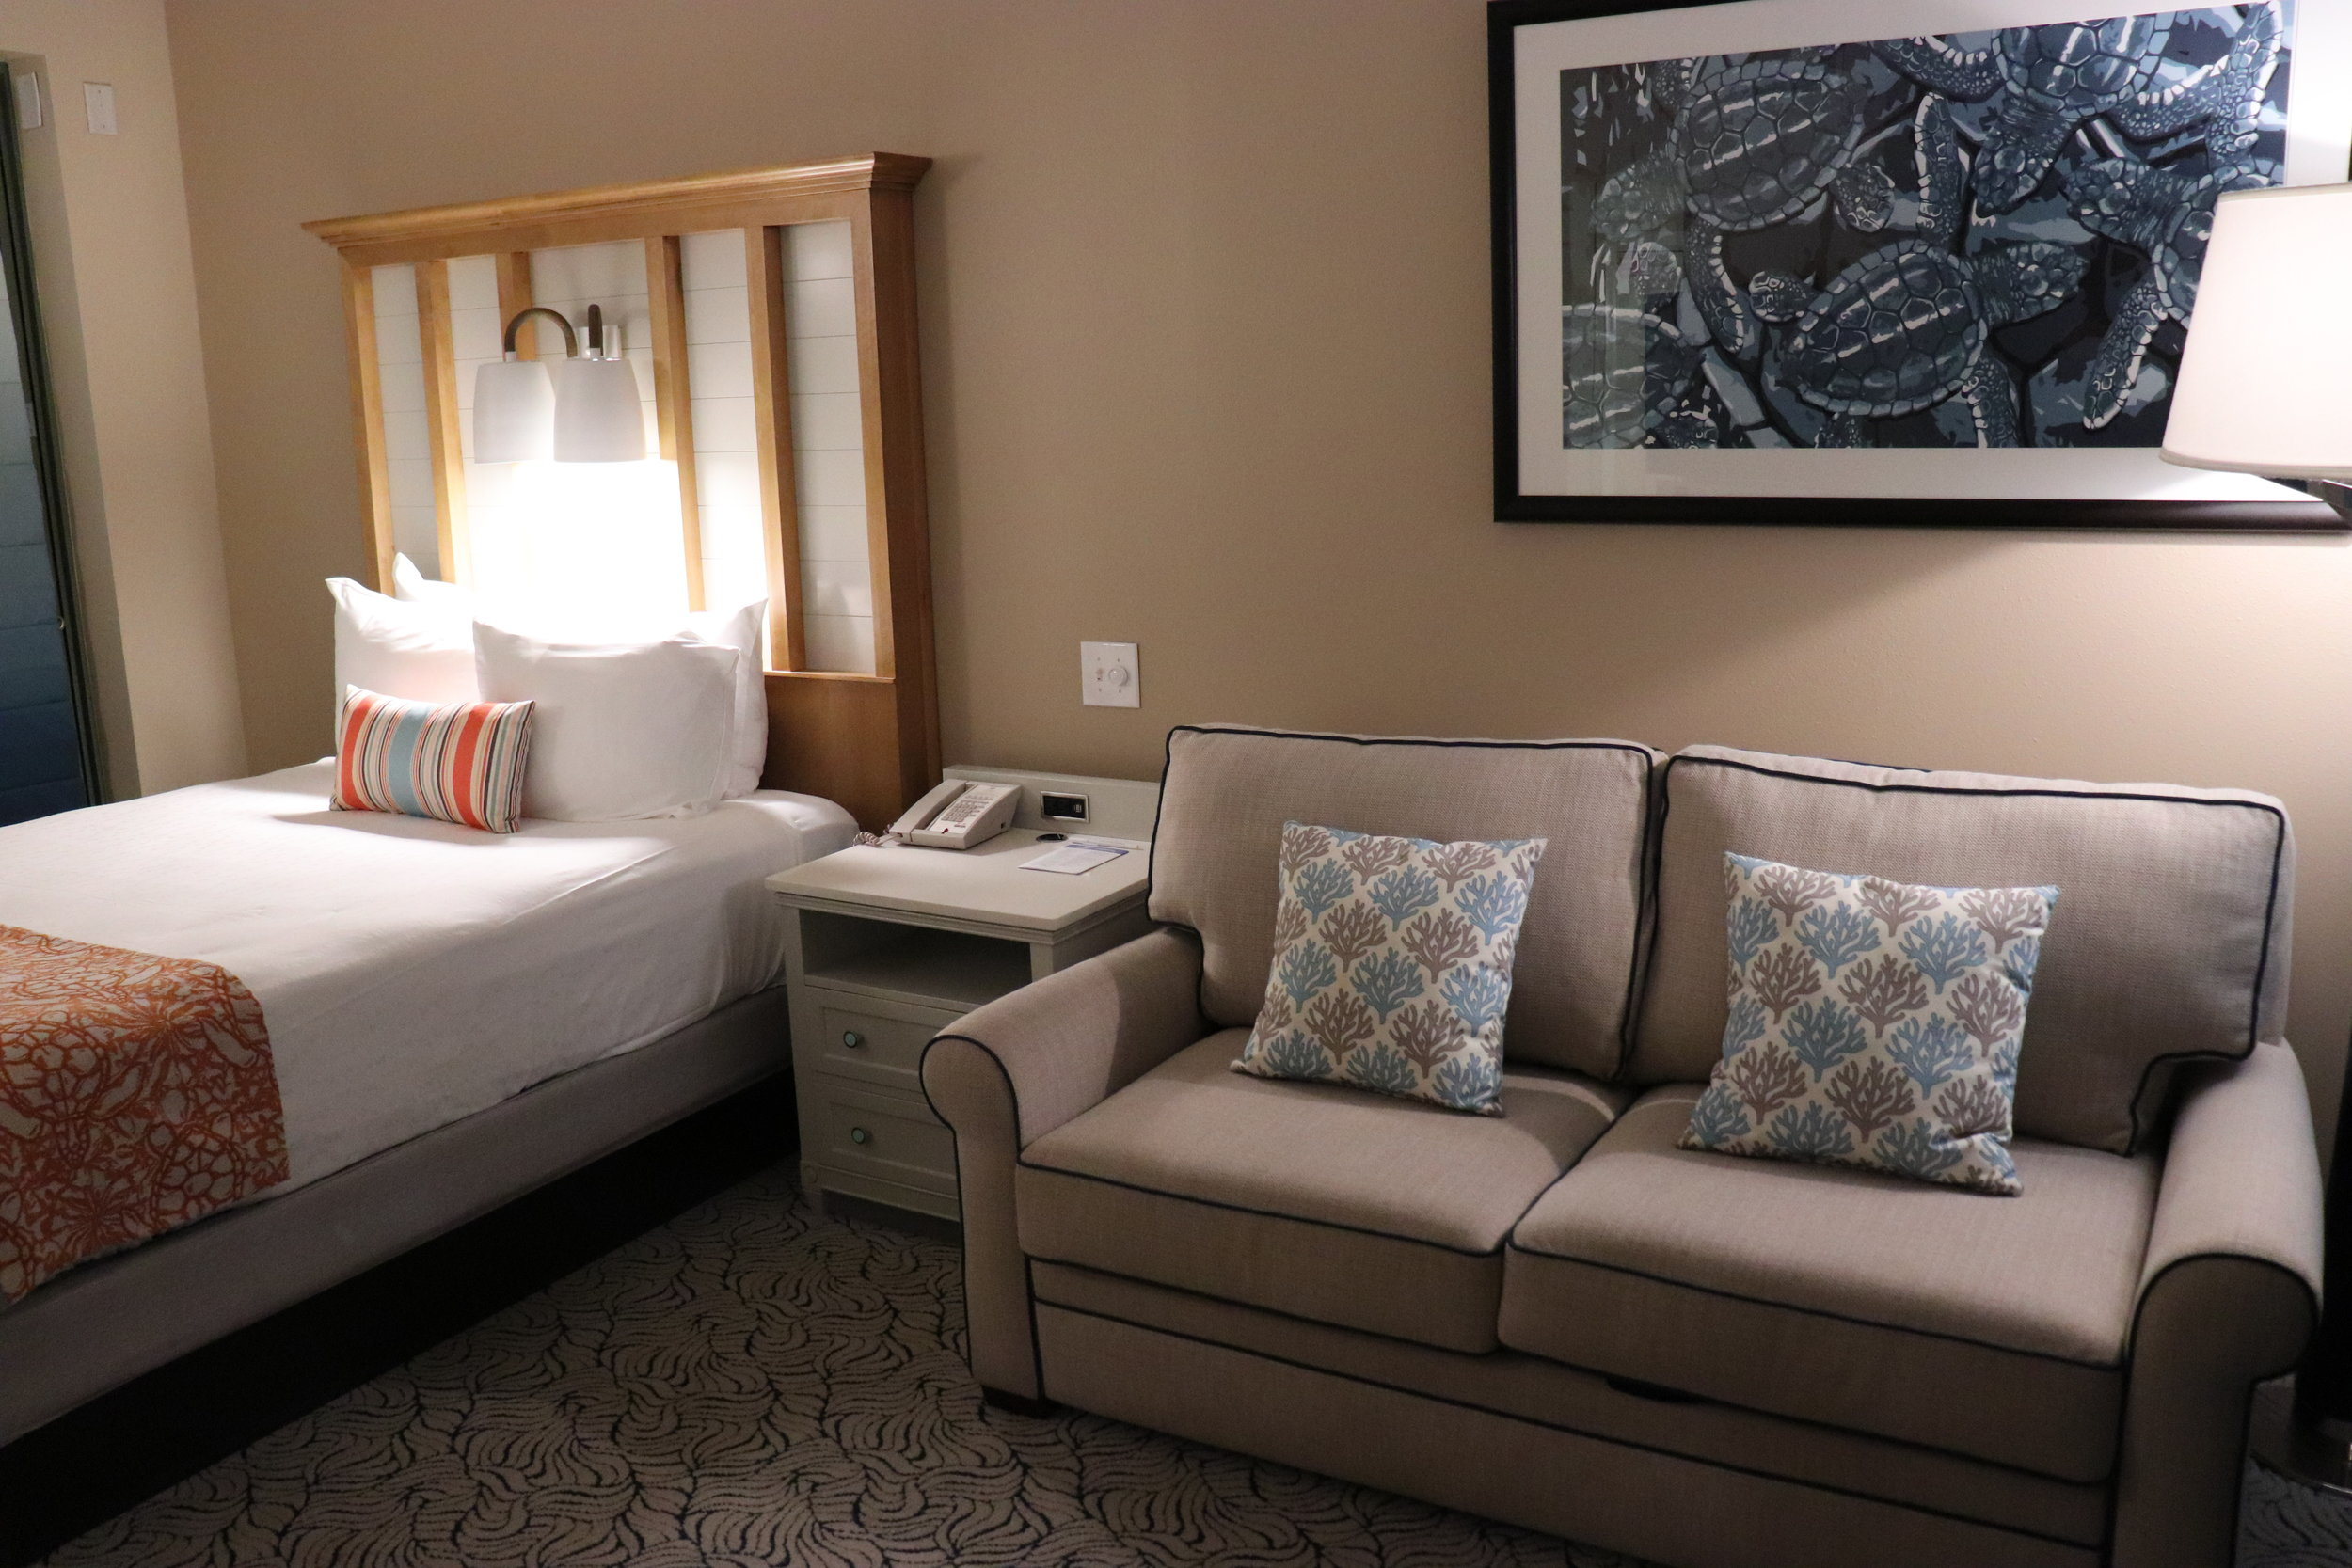 A Deluxe Studio features a bed and pull out sofa.